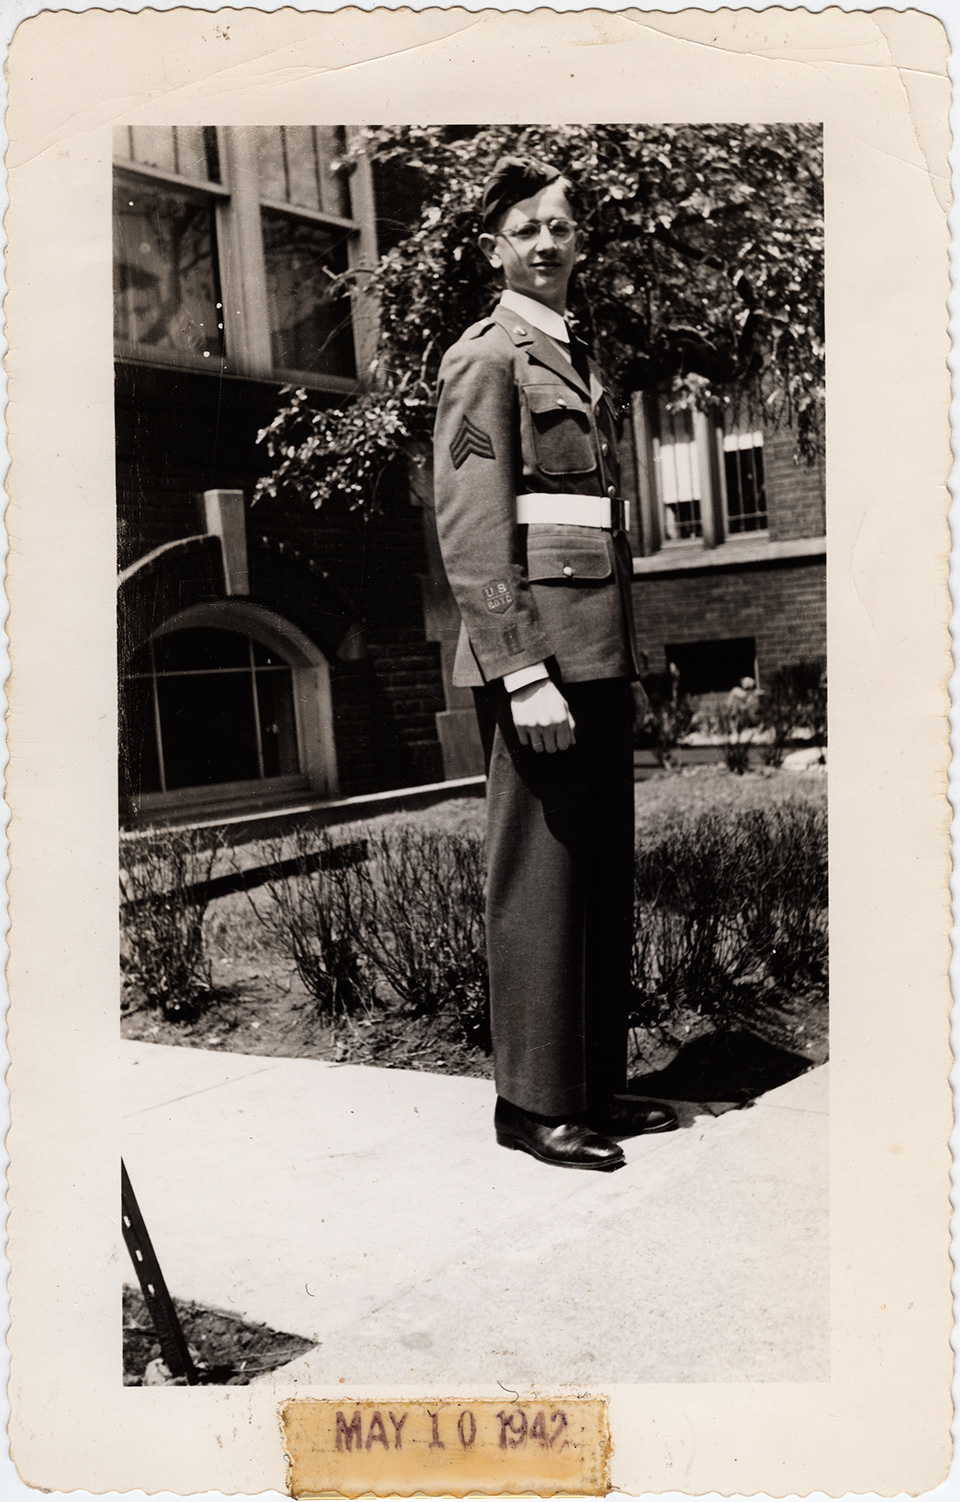 "R.S. Mendelsohn as a young man, in a Reserve Officers' Training Corps (ROTC) uniform and standing on the sidewalk in front of a building. A patch labelled ""US 4010"" is visible on his right sleeve. Part of a tree and lawn are visible behind him."